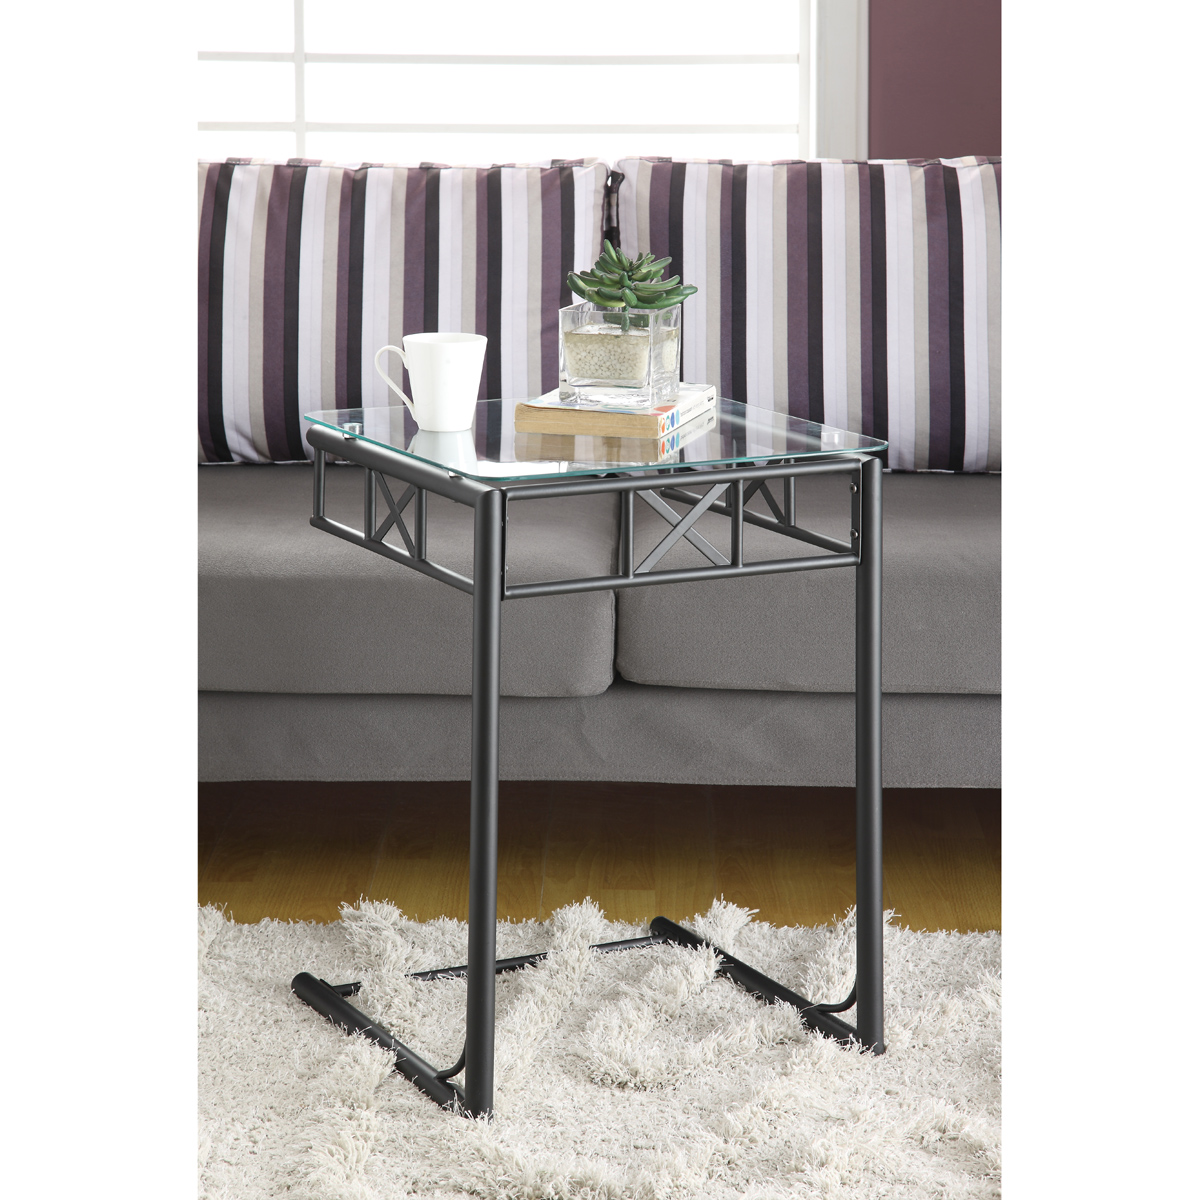 lennox glass top accent table black contemporary end brass and small height adjustable desk outdoor bistro with umbrella hole decorative stands for living room white storage trunk